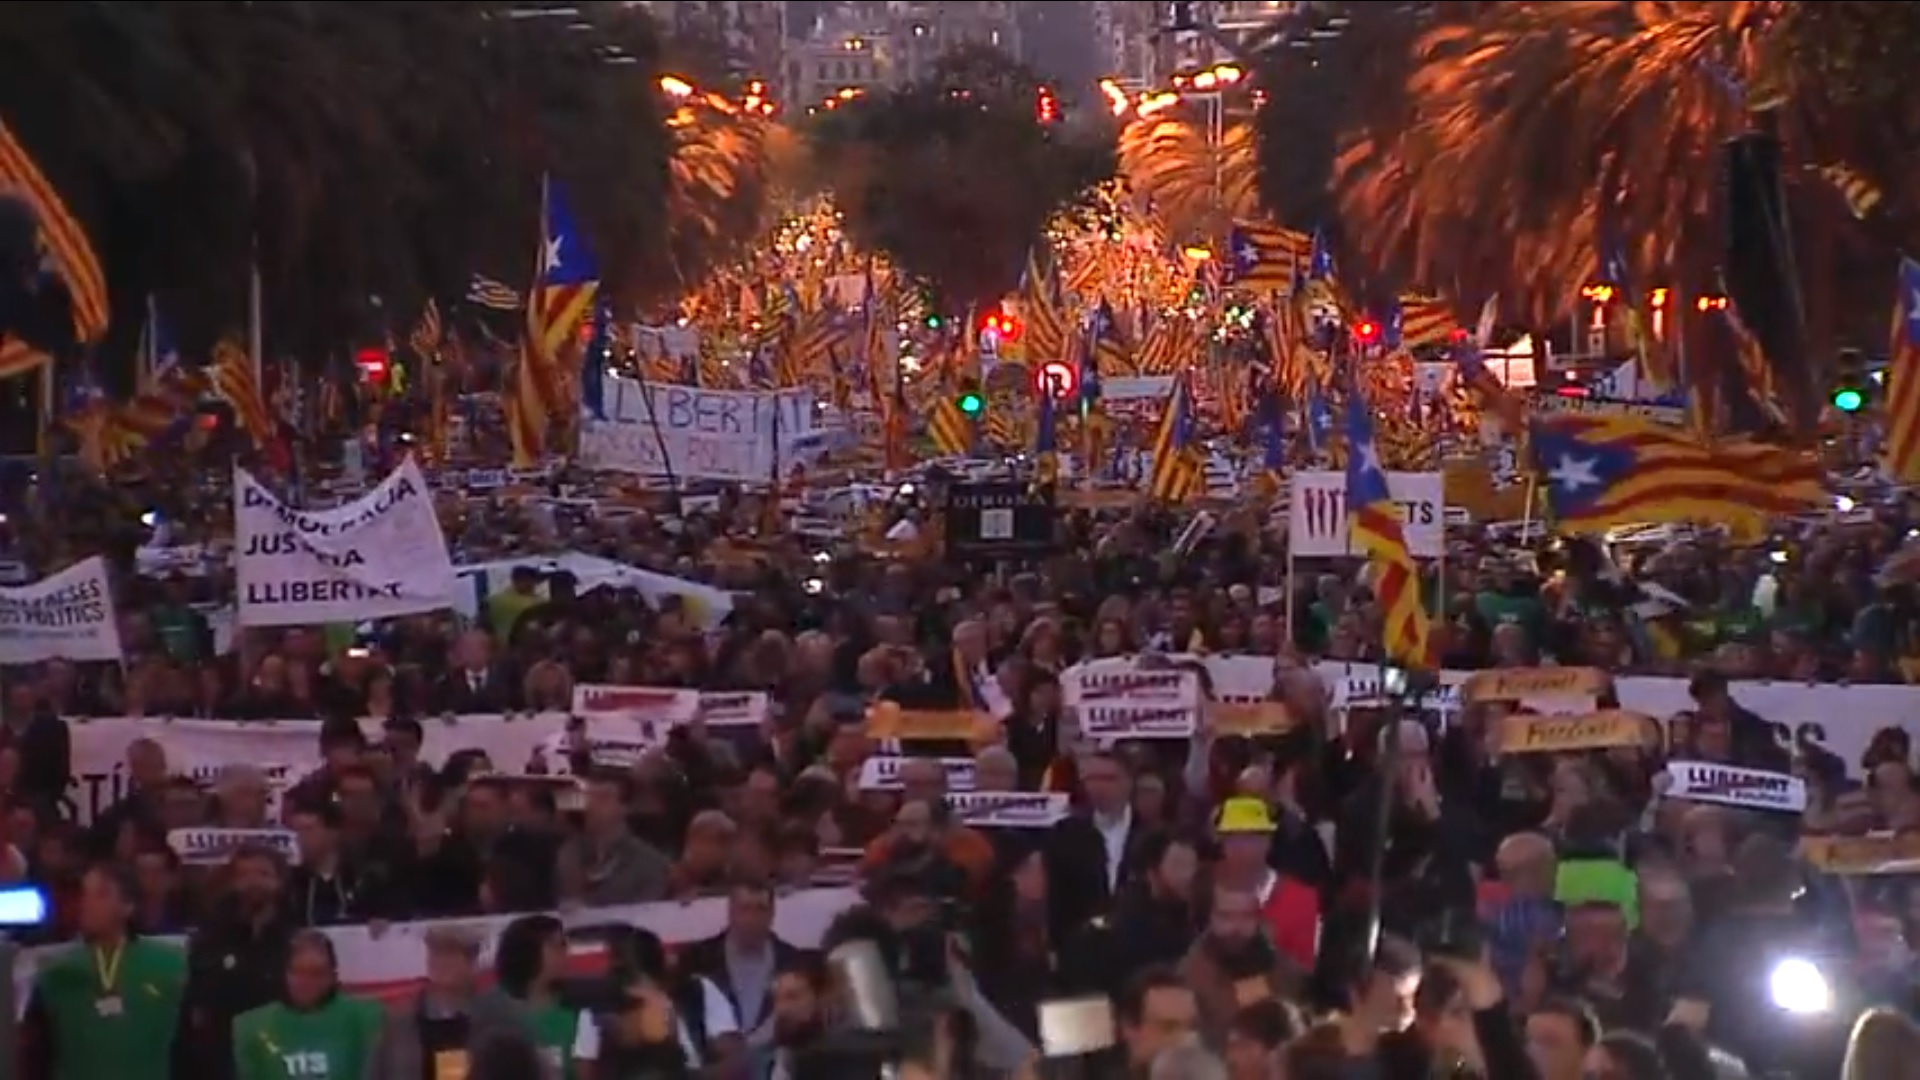 LIVE: March against imprisonment of Catalan leaders